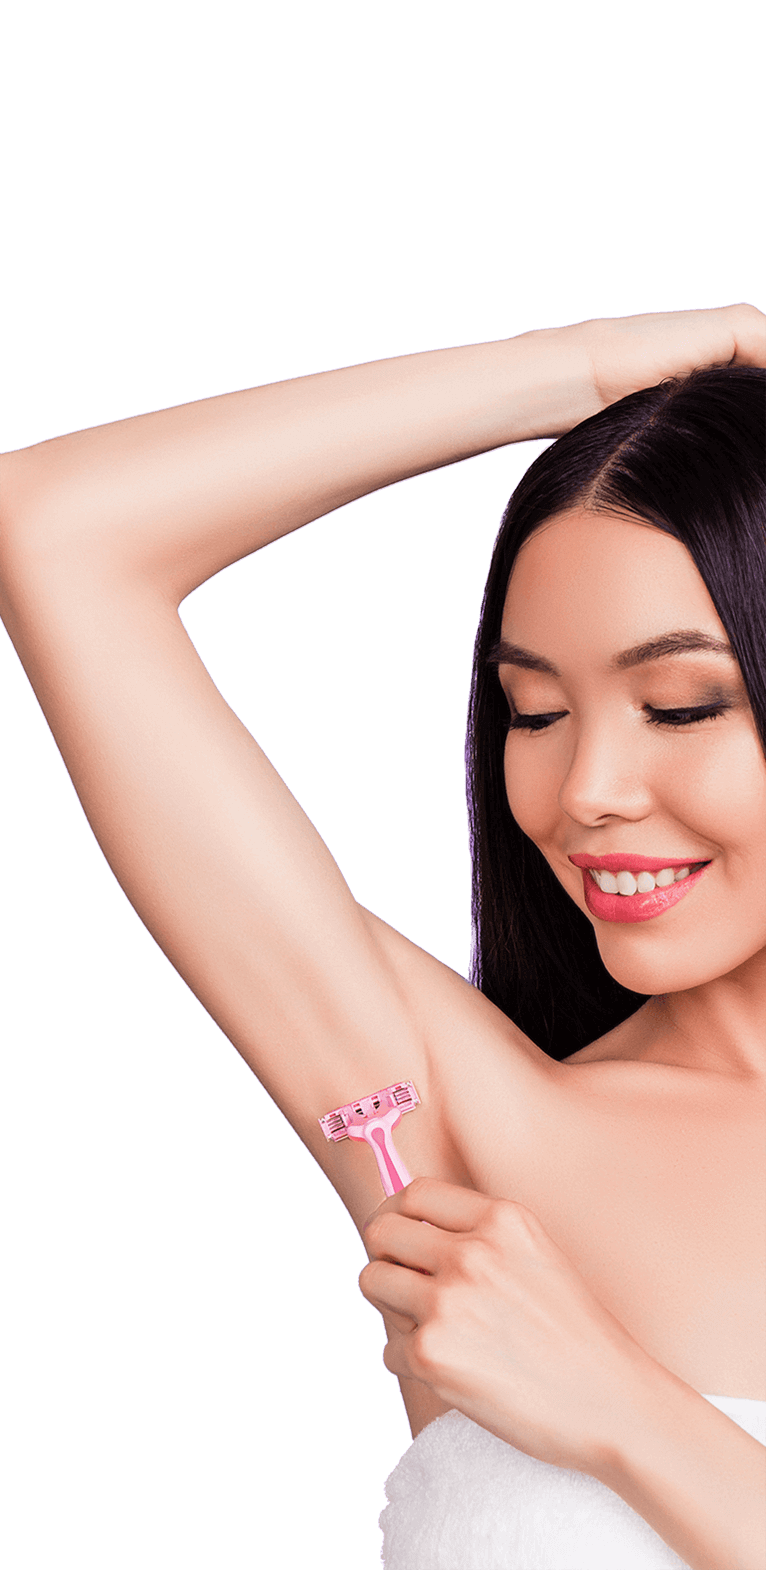 How to help prevent ingrown hairs